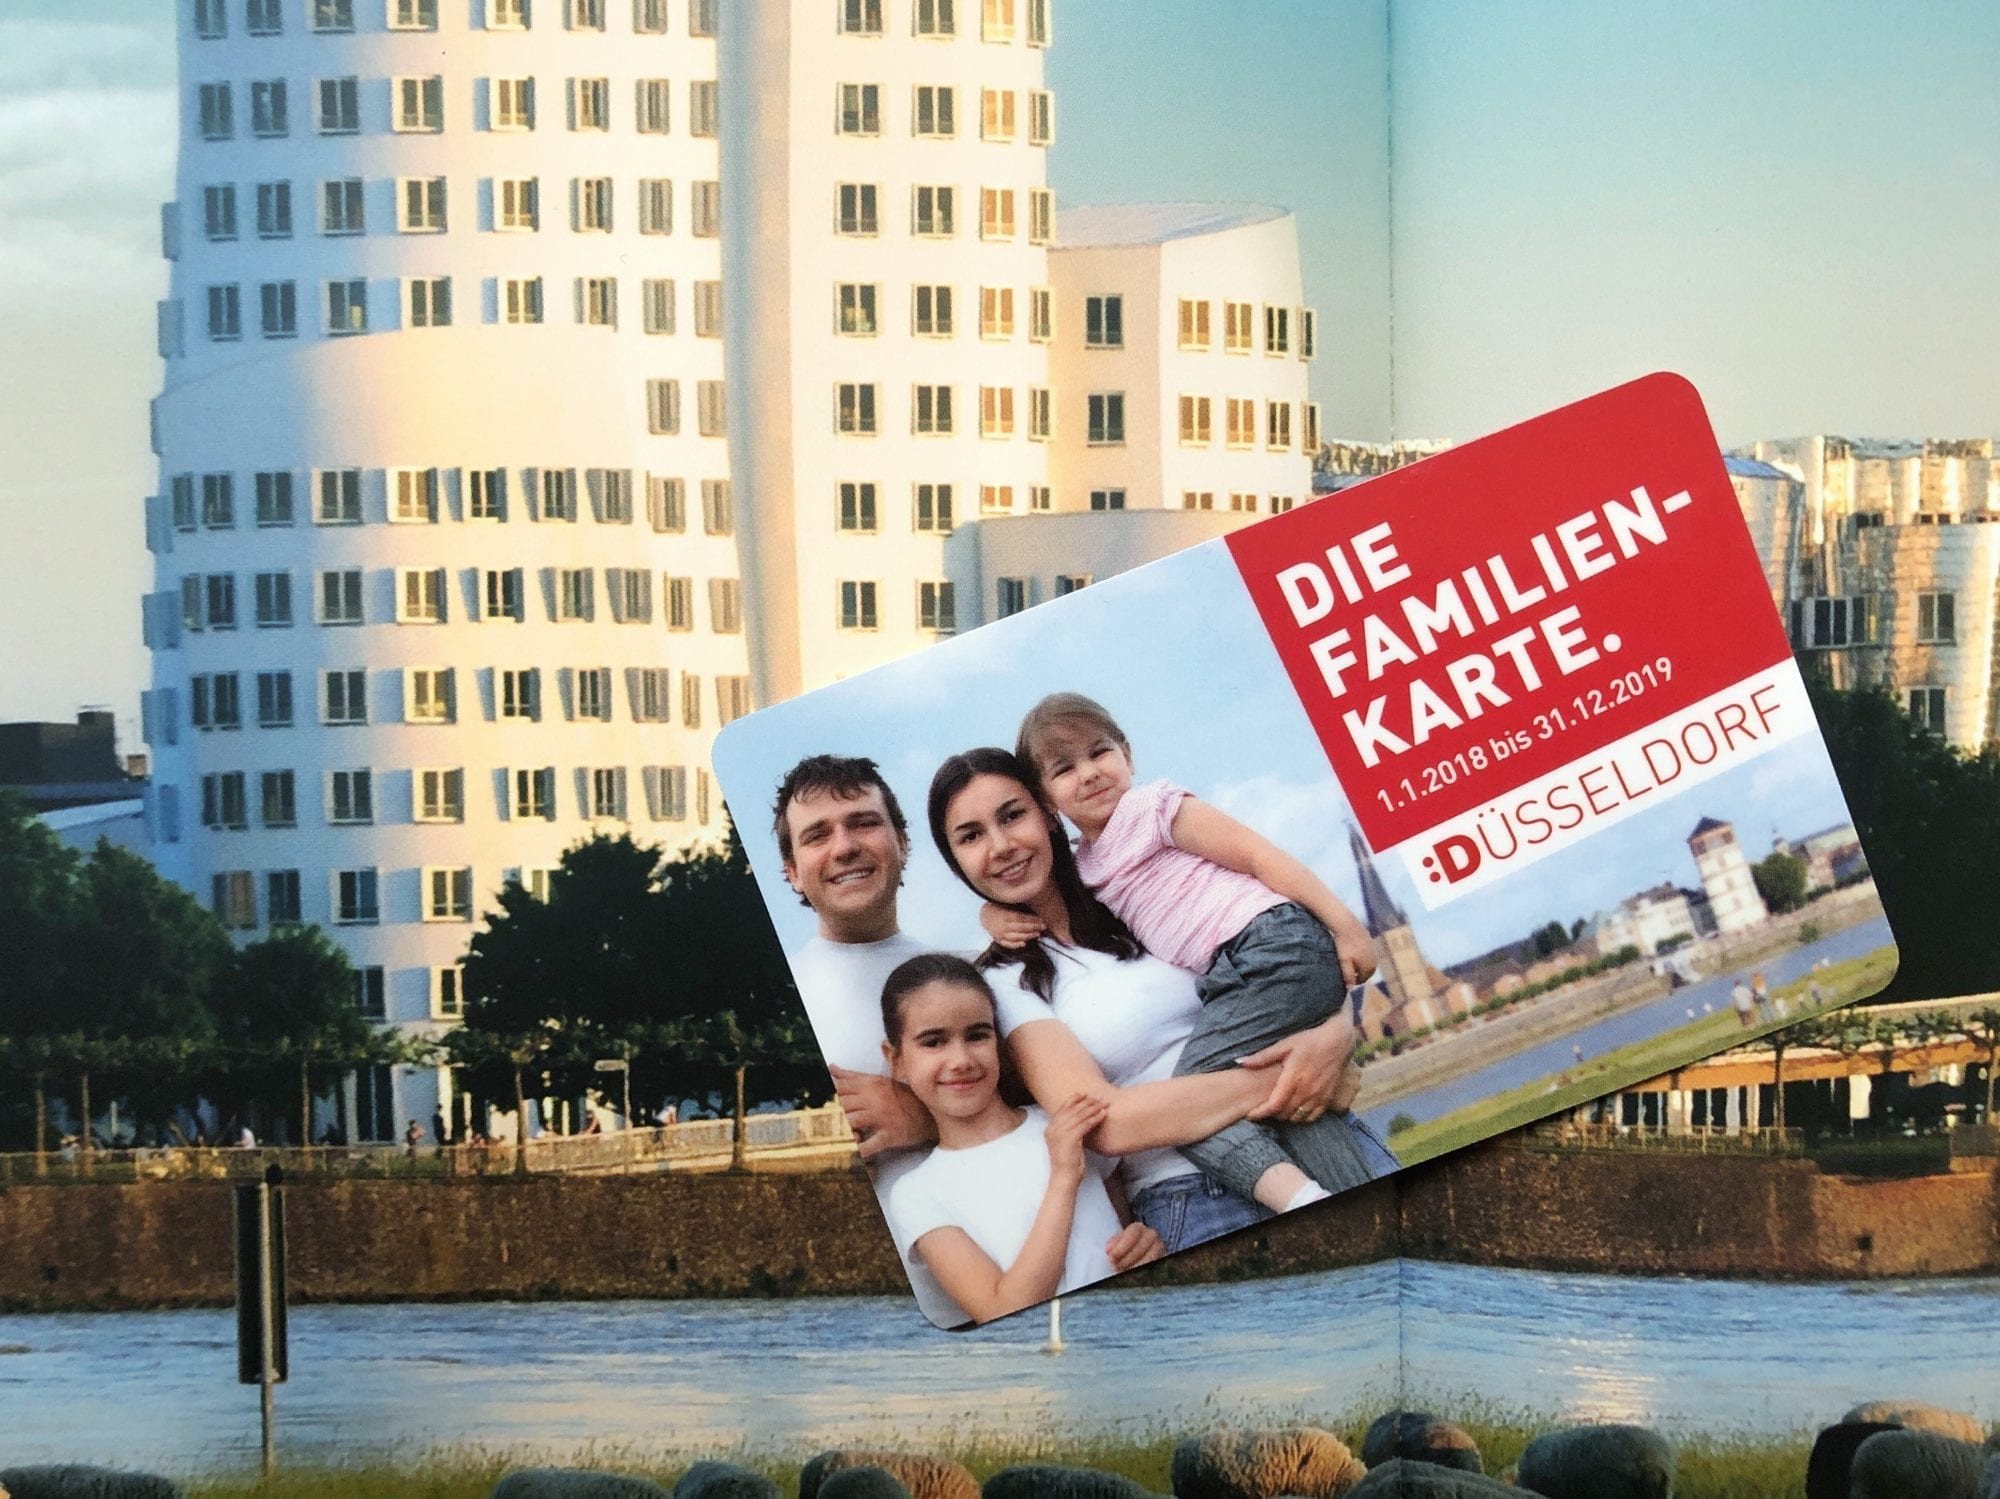 How to Get The Düsseldorf Family Card for Free